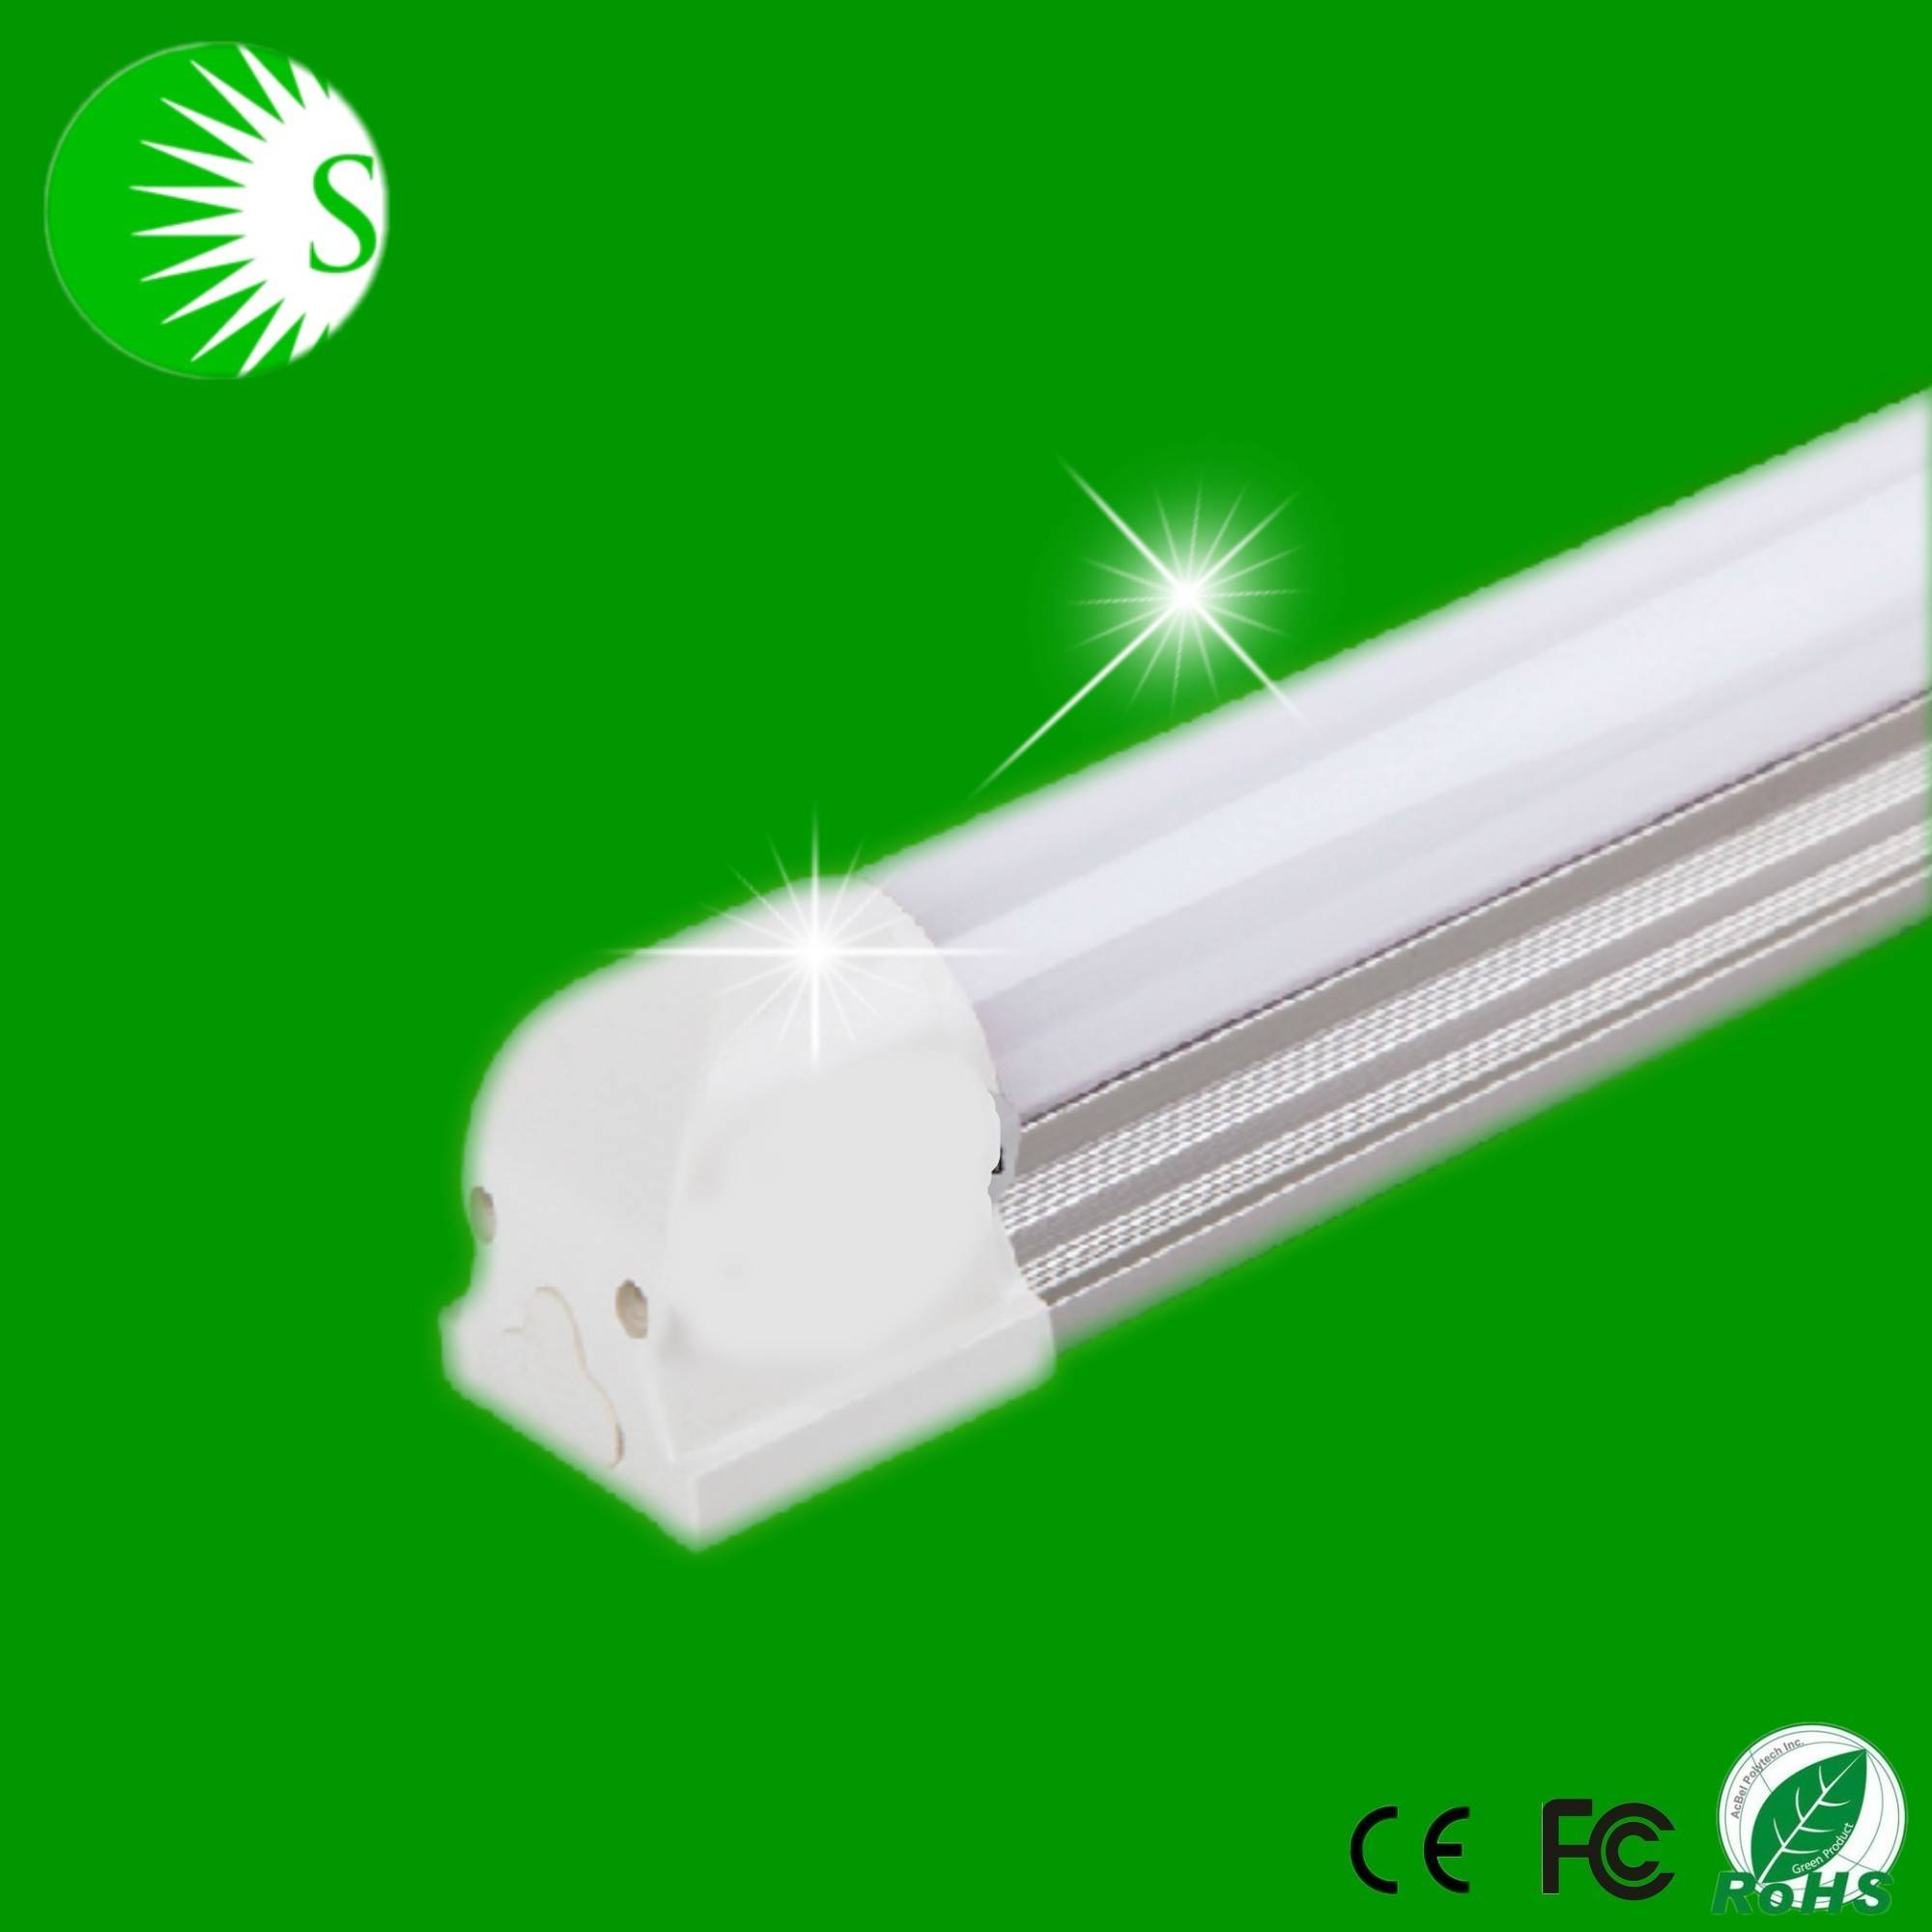 4w 6w 9w 12w 18w 0.6m 0.9m 1.2m Epistar 2835 led chip light wide voltage 85-265v zhongshan led tube